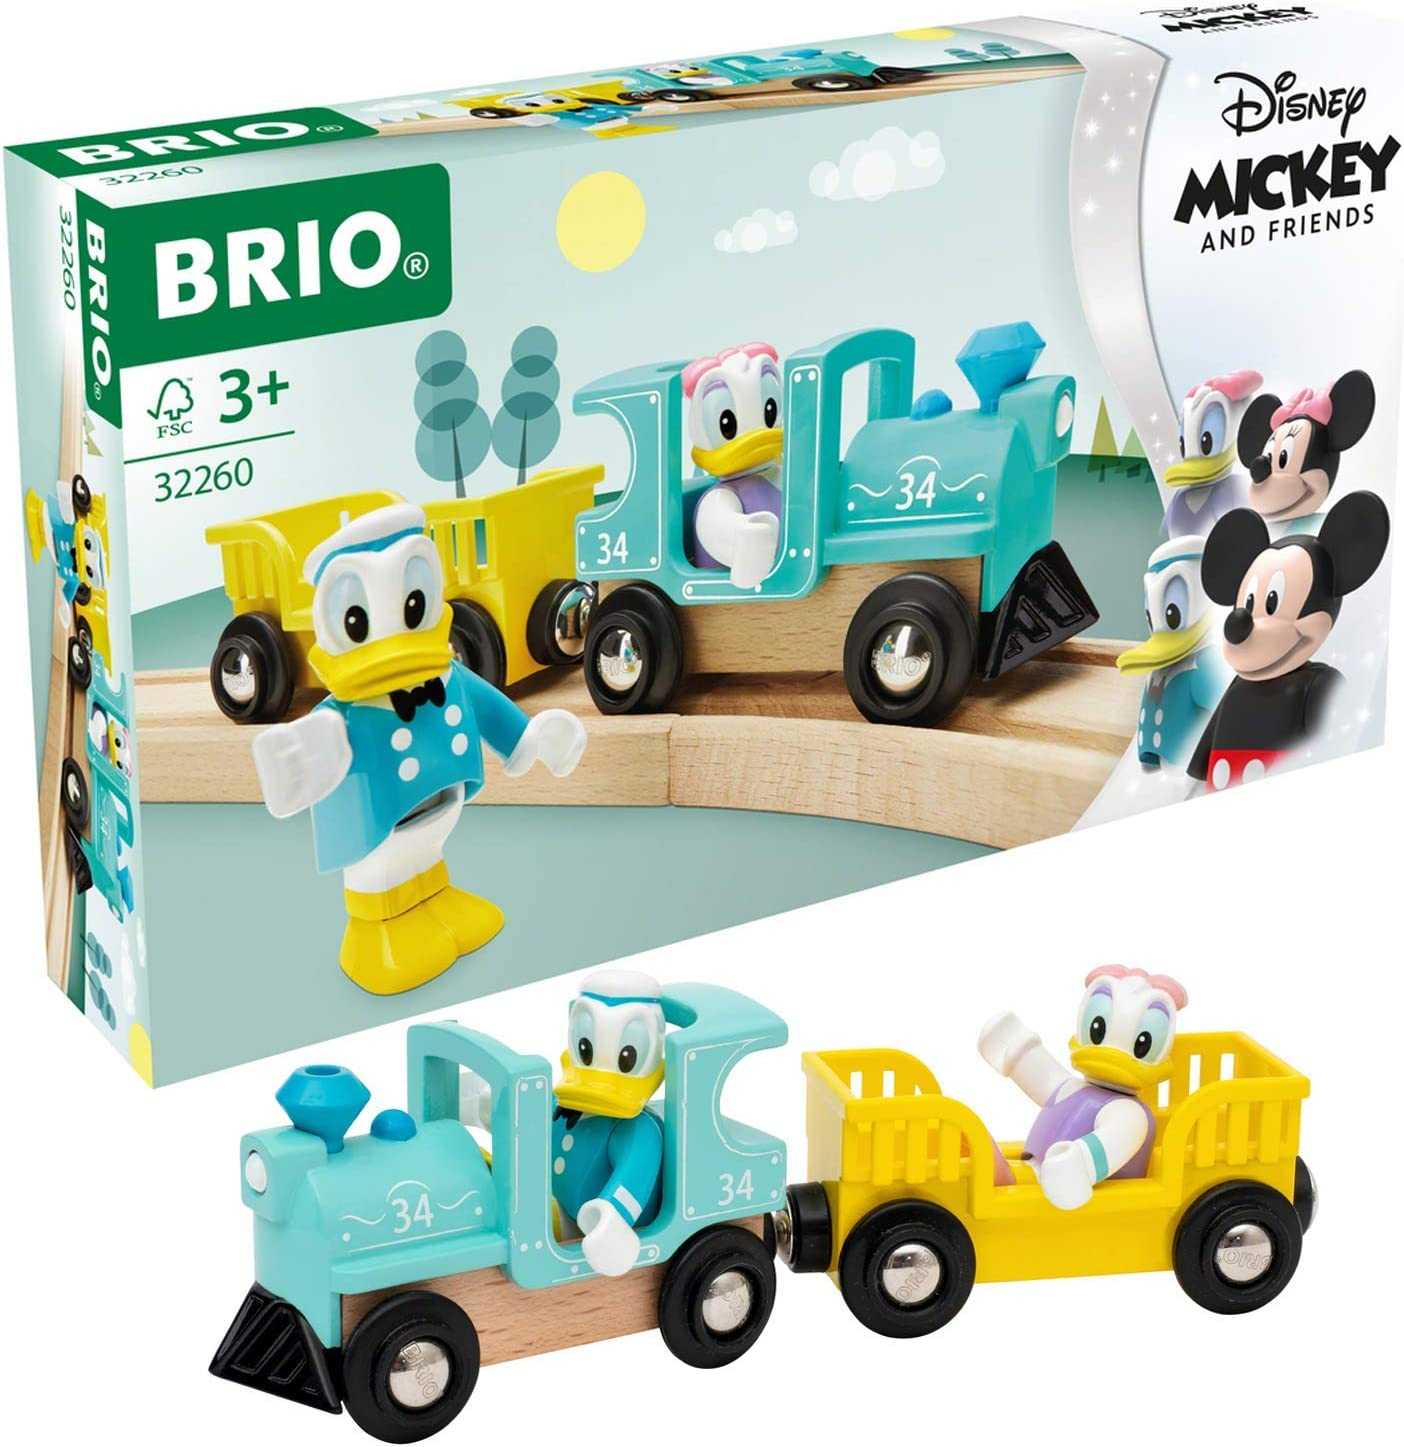 Brio 32260 Disney Mickey and Friends: Donald & Daisy Duck Train   Wooden Toy Train Set for Kids Age 3 and Up - Amazon Exclusive